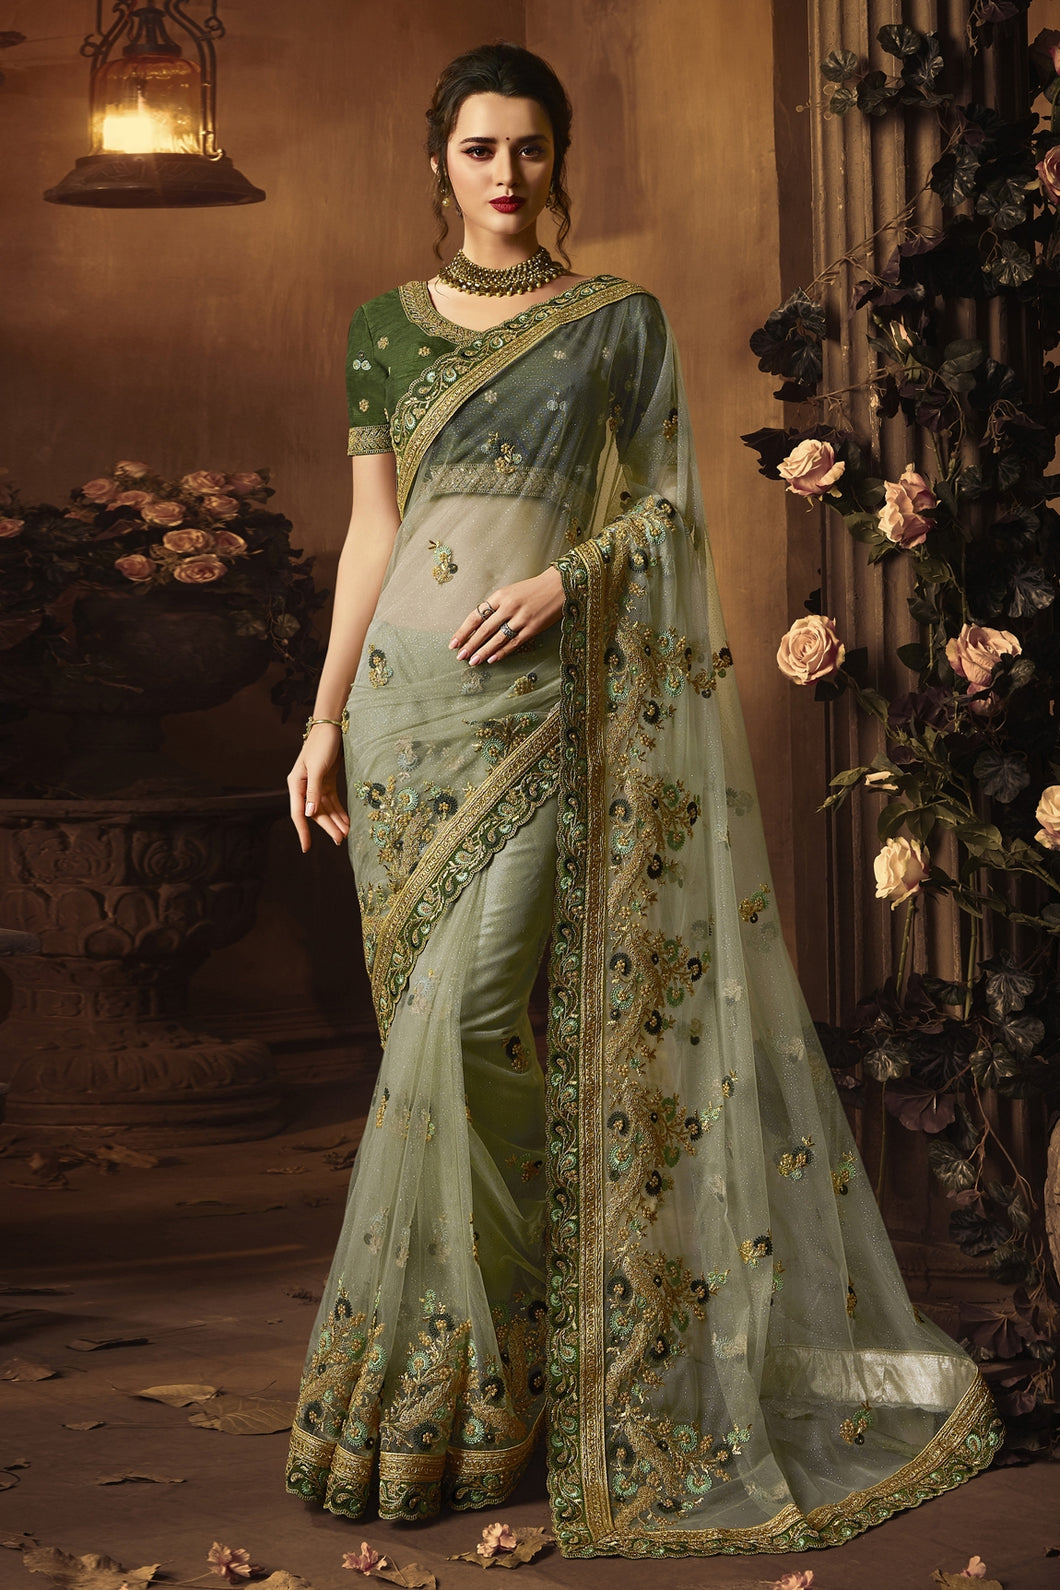 Bhelpuri Light Green Net Zari Resham Embroidered Designer Saree with Blouse Piece